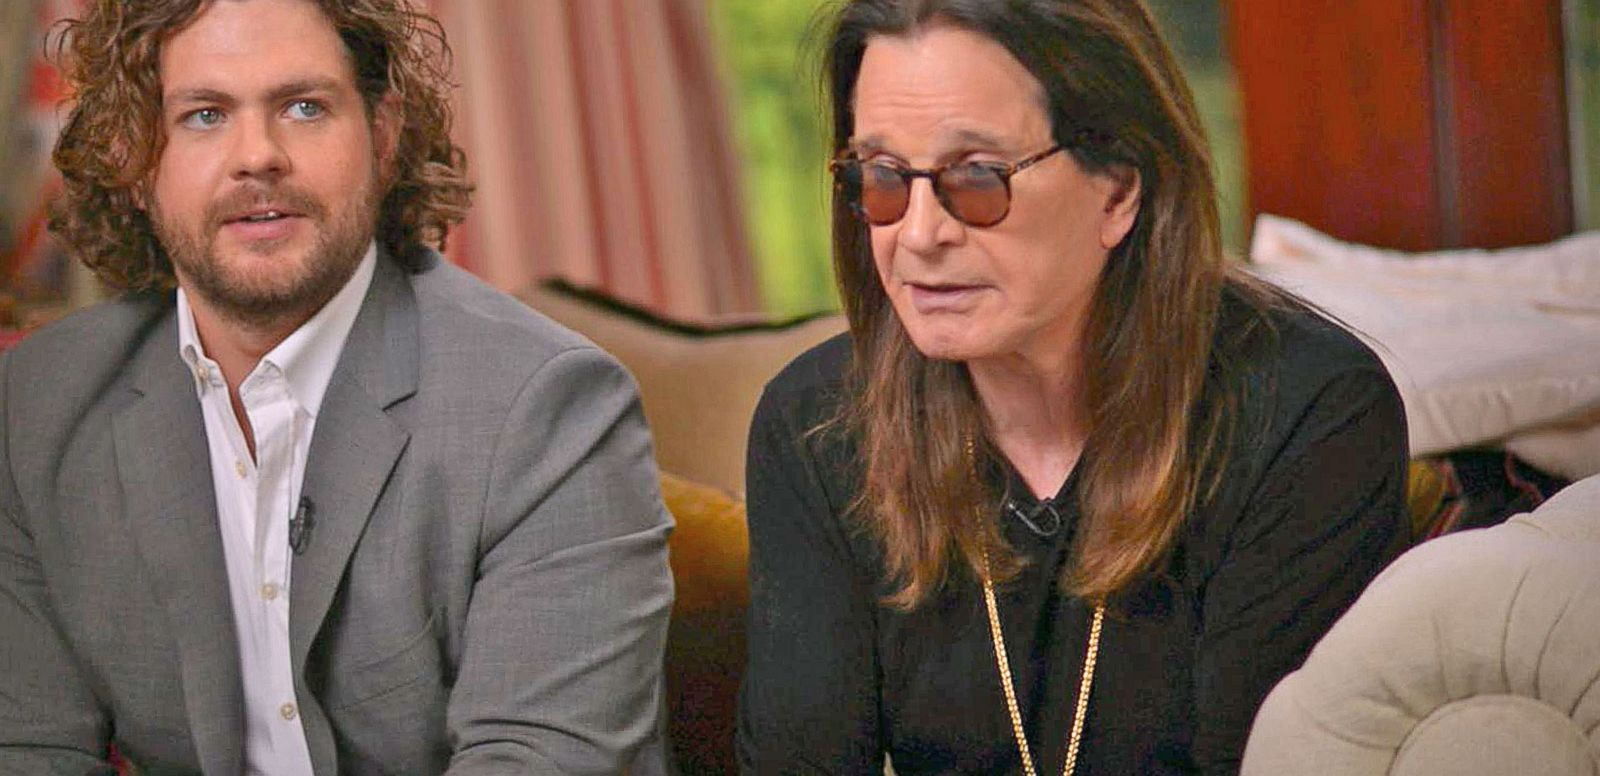 VIDEO: Ozzy Osbourne and Son Jack Open Up About Family and New Show